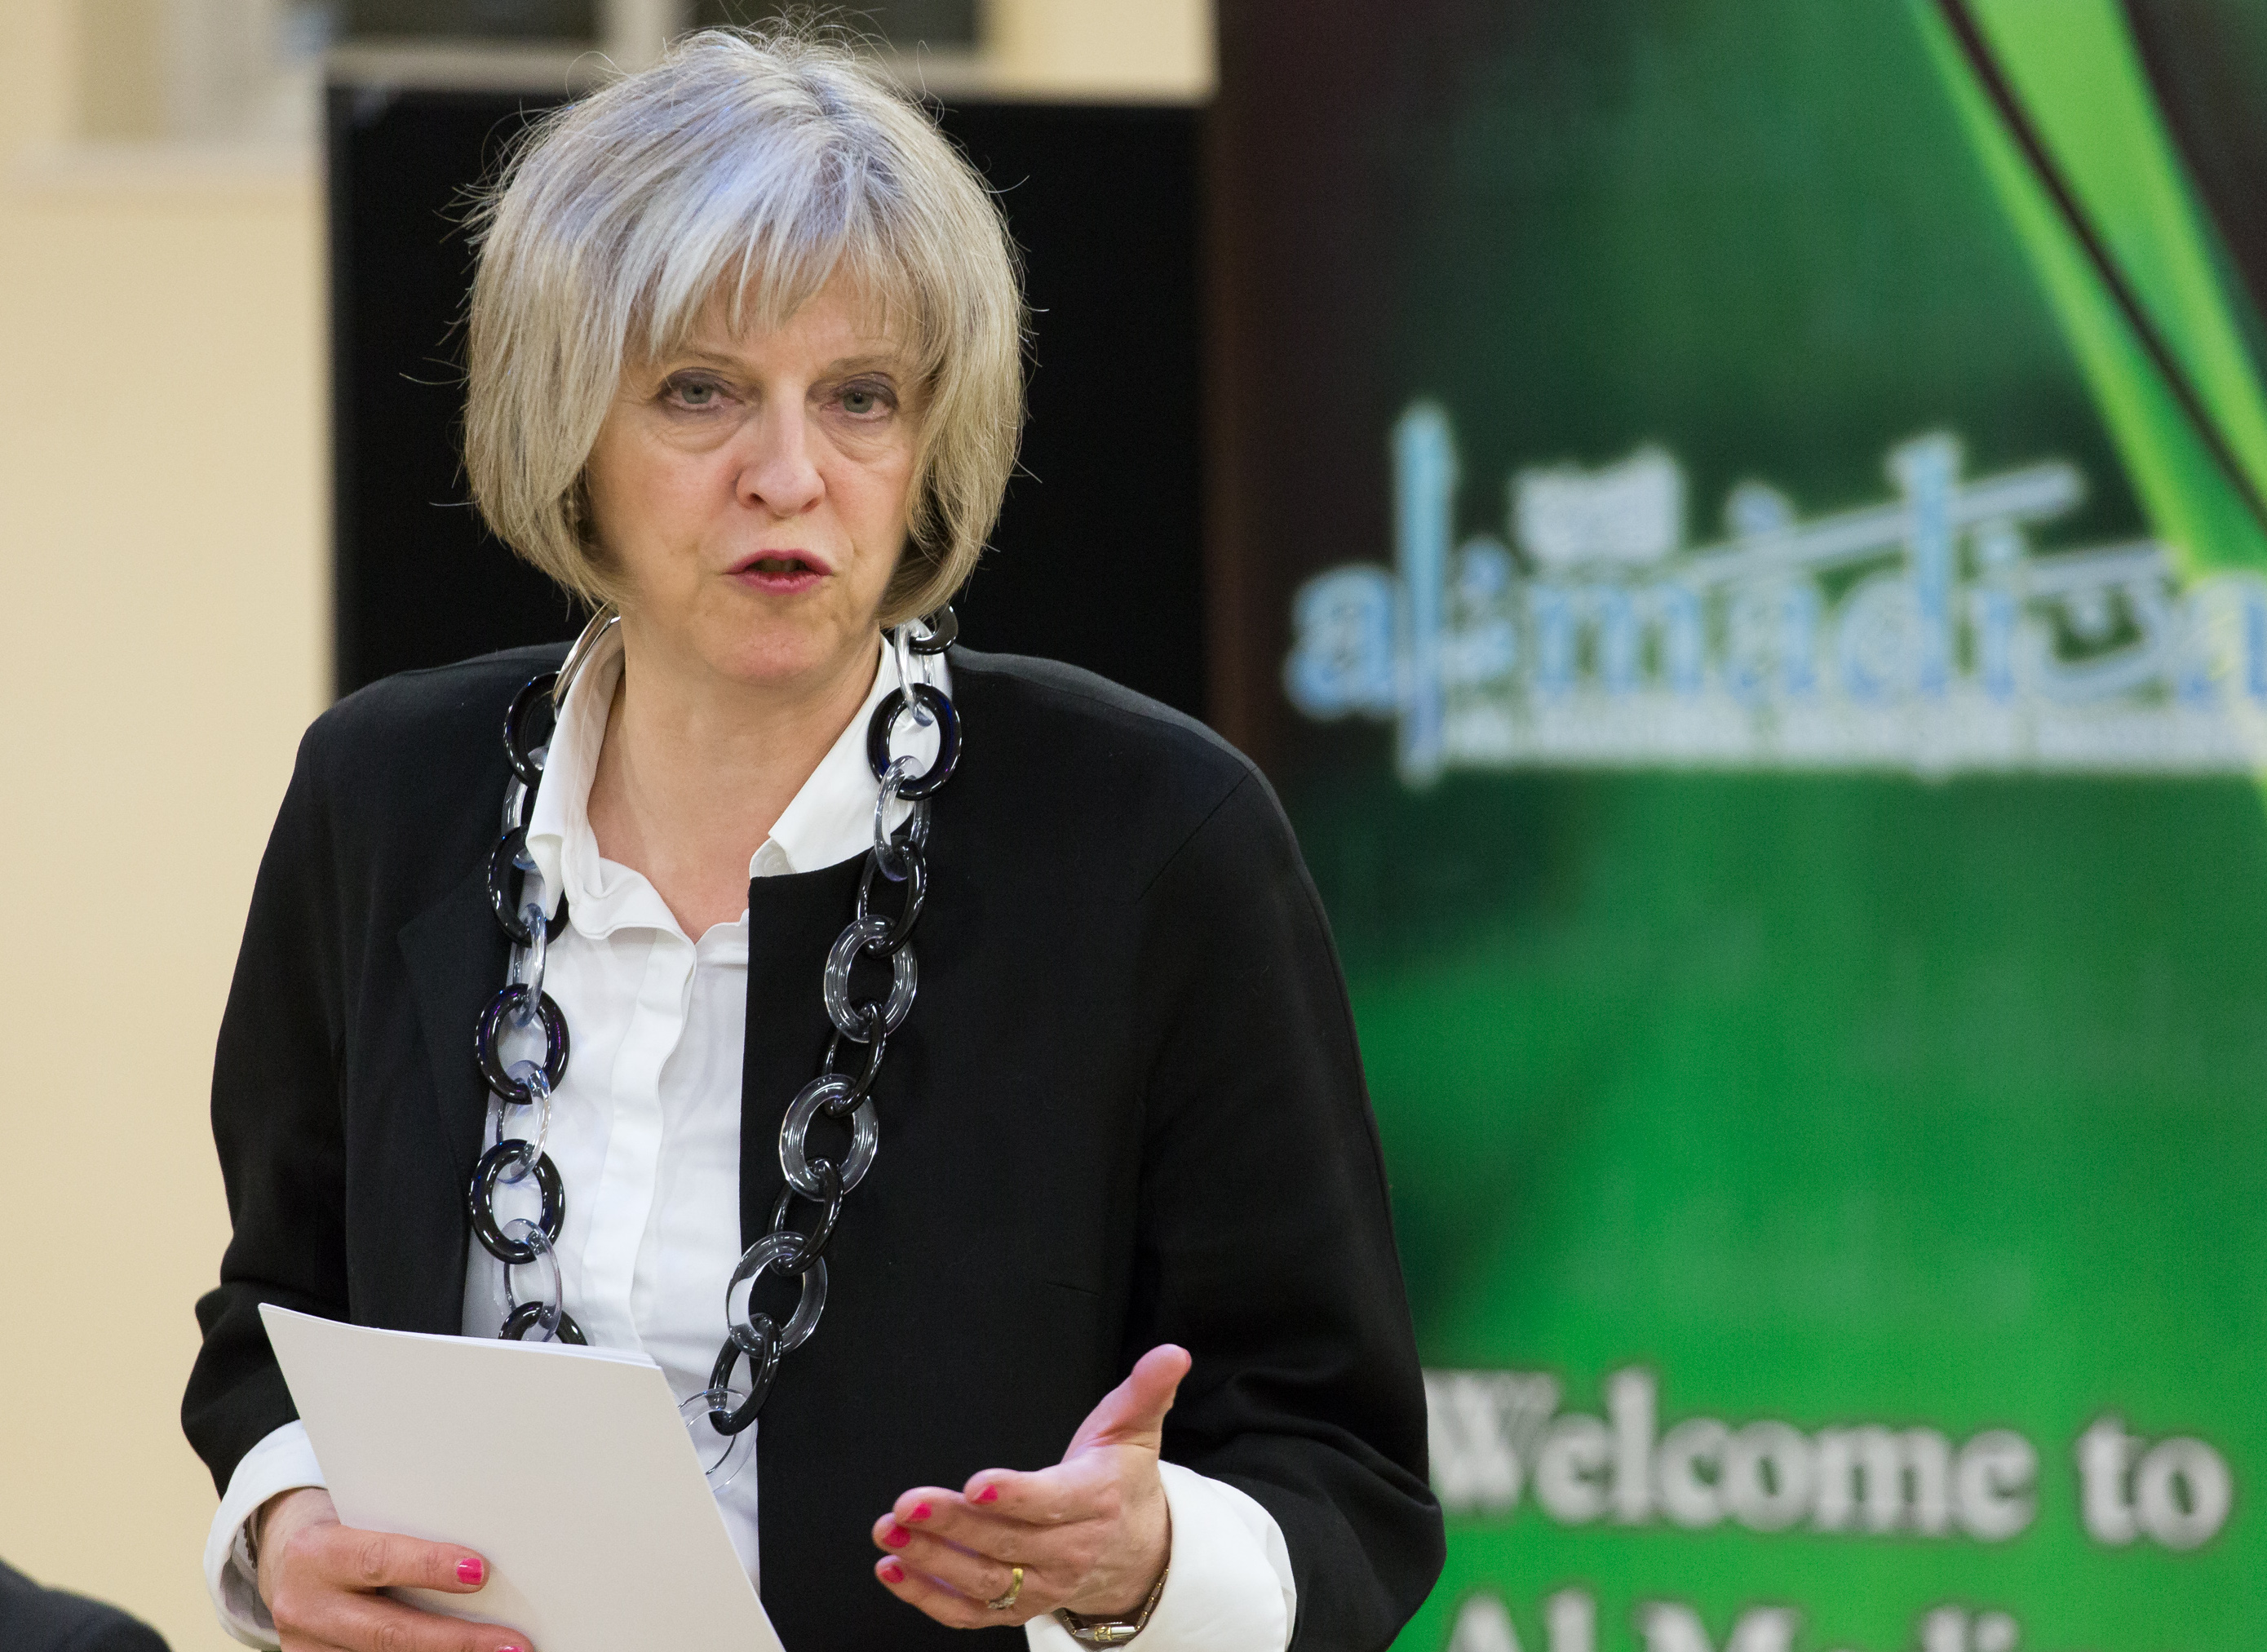 Theresa May visits Al Madina Mosque - RightsInfo